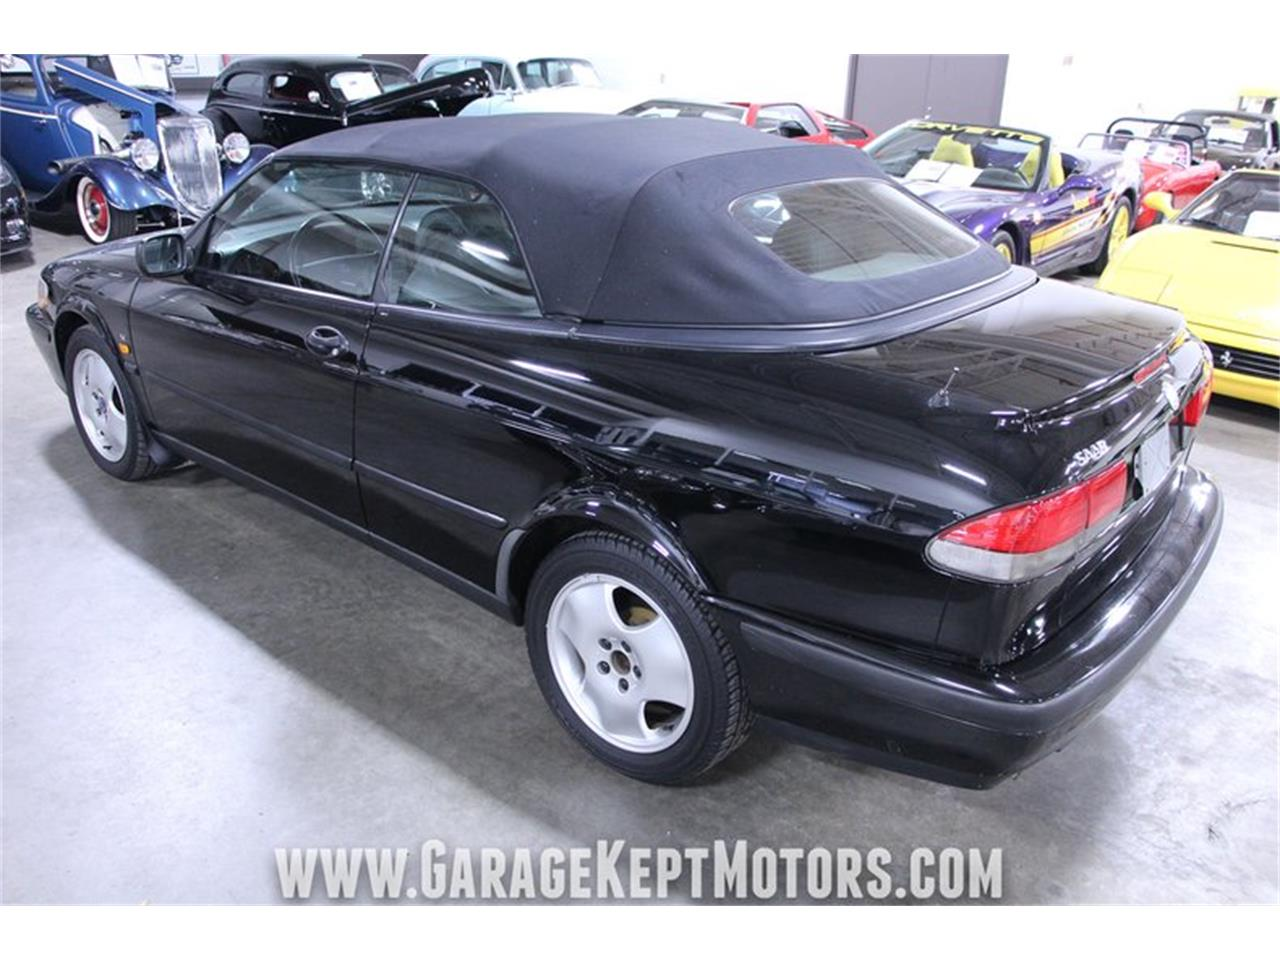 1999 Saab 9-3 for sale in Grand Rapids, MI – photo 63